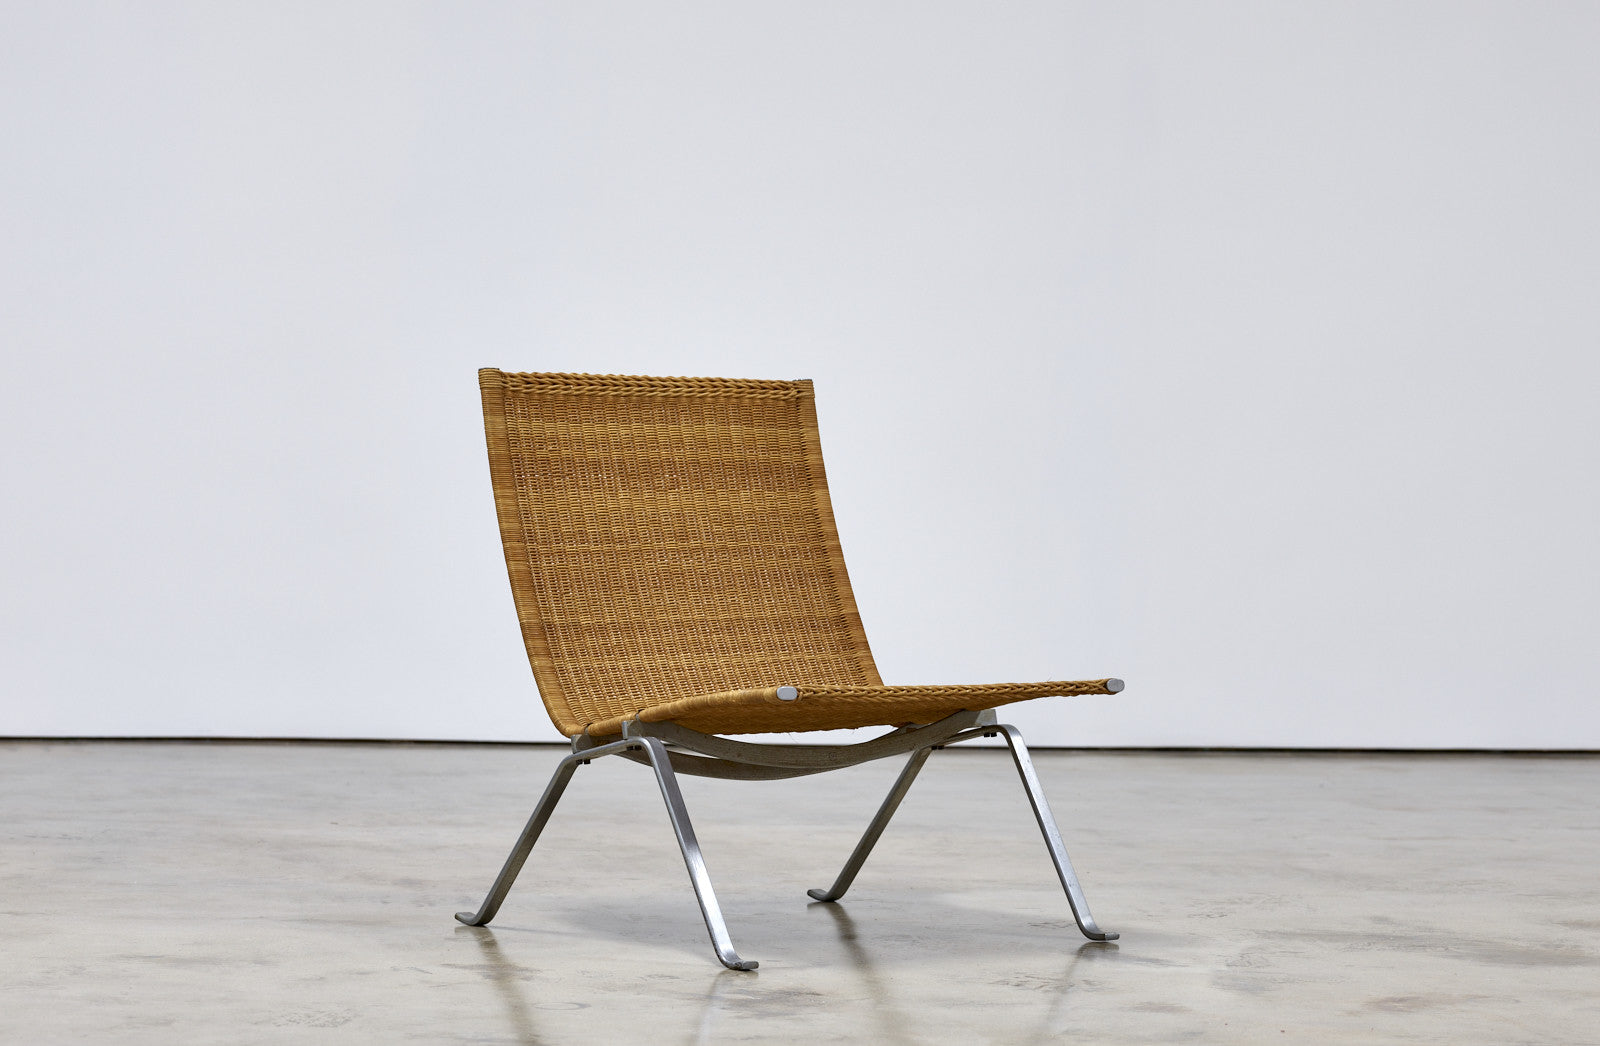 Poul Kjaerholm for E Kold Christensen Chair, Model PK-22 - The Exchange Int